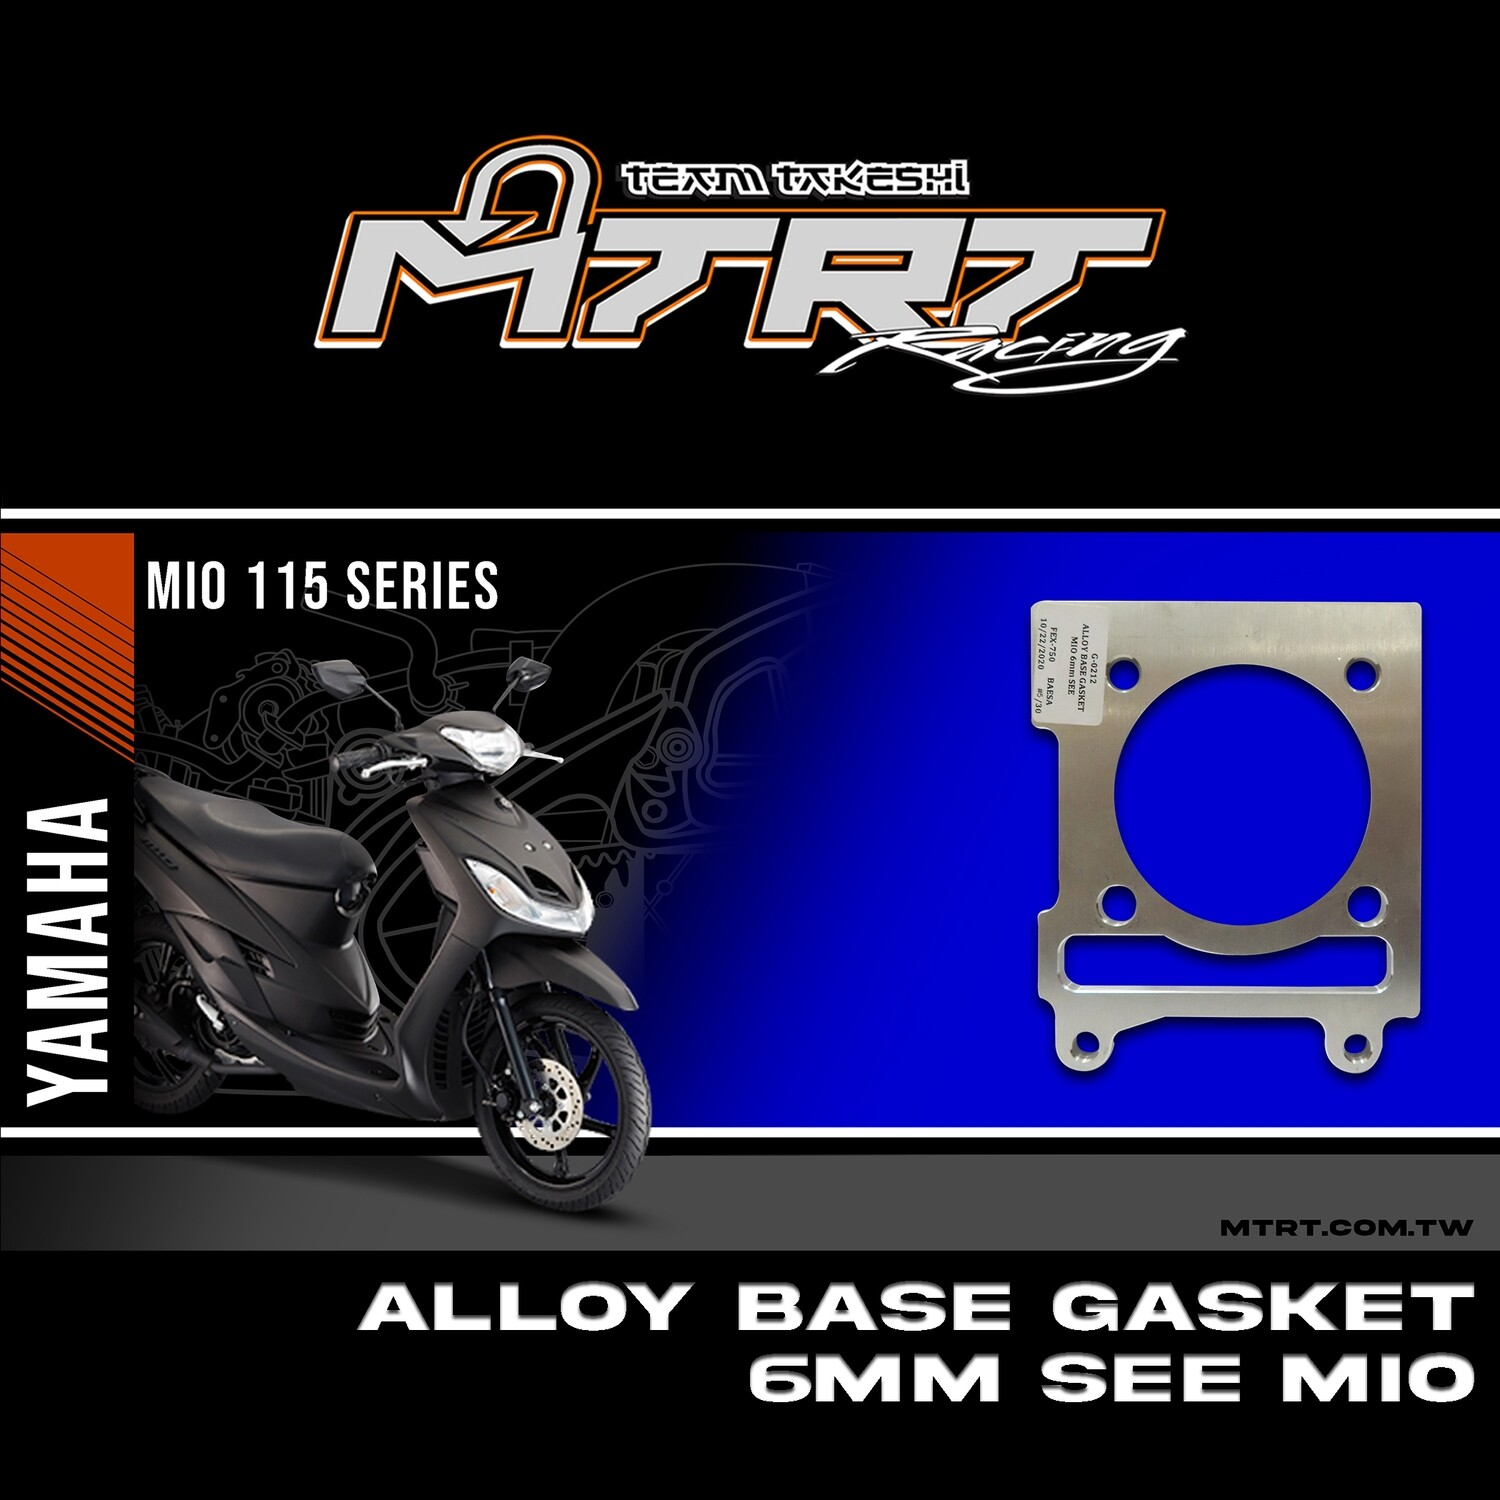 Alloy Base Gasket  6MM  SEE MIO